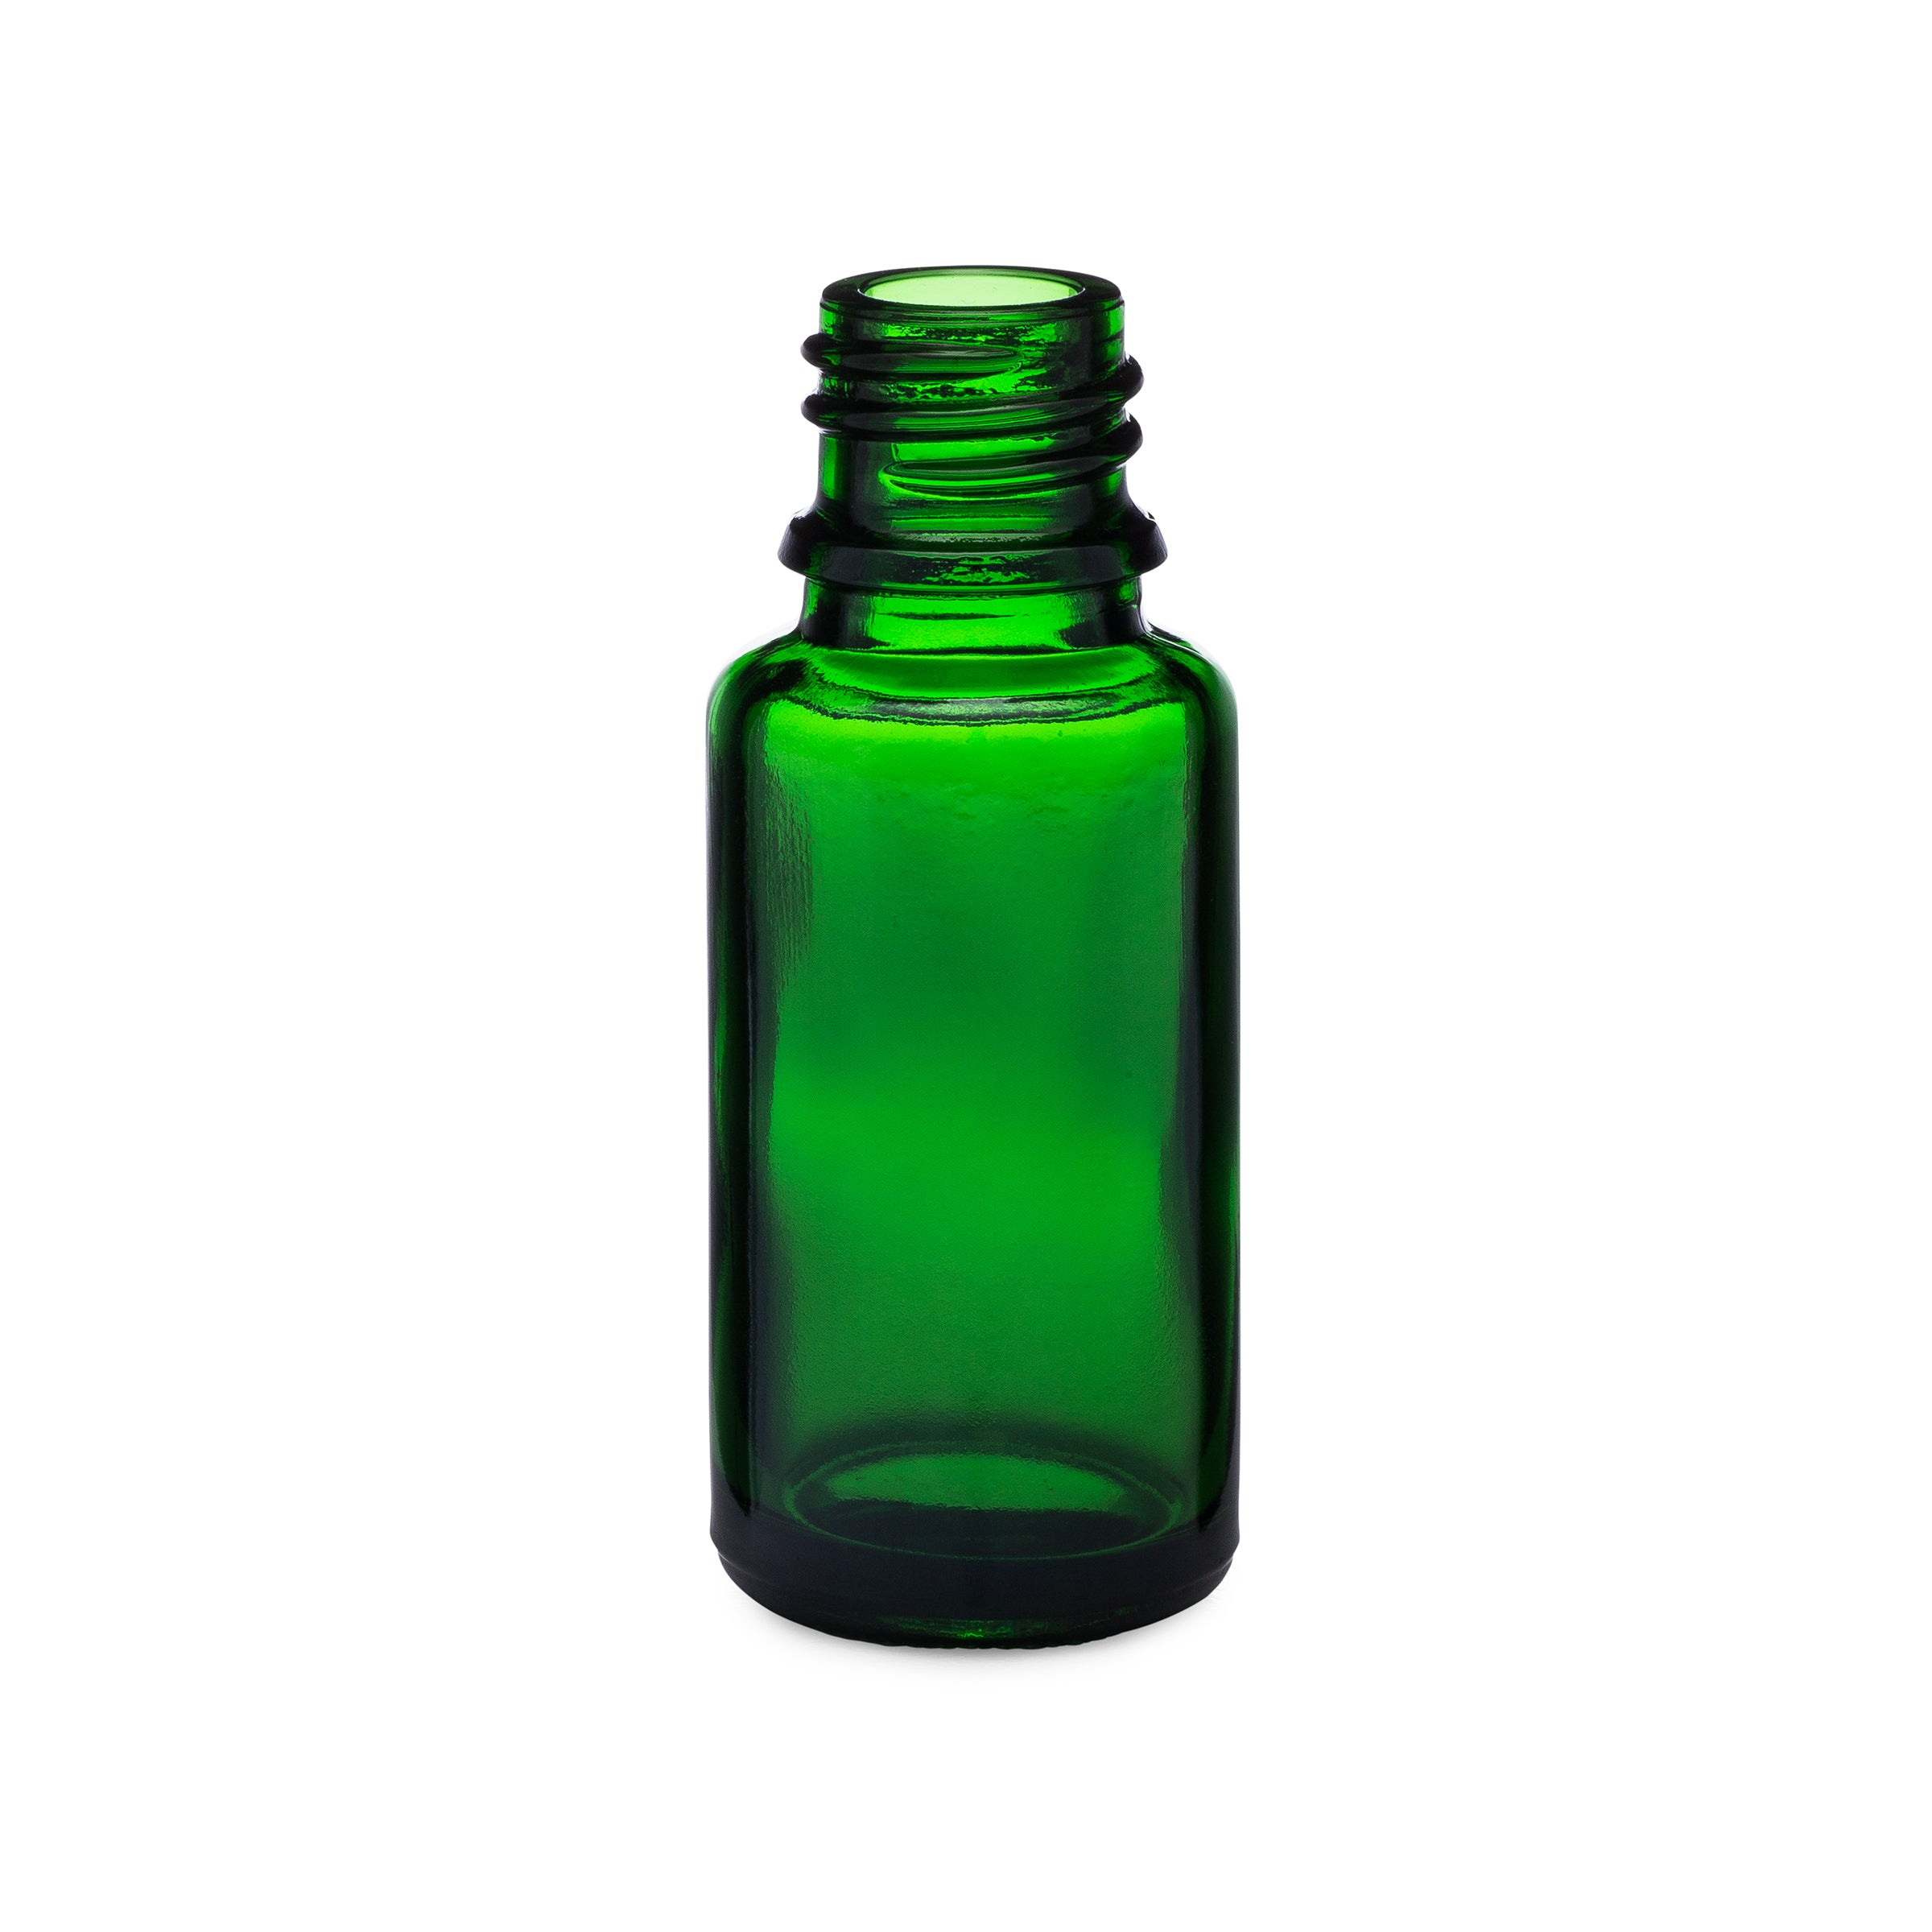 10ml Green Dropper Bottle